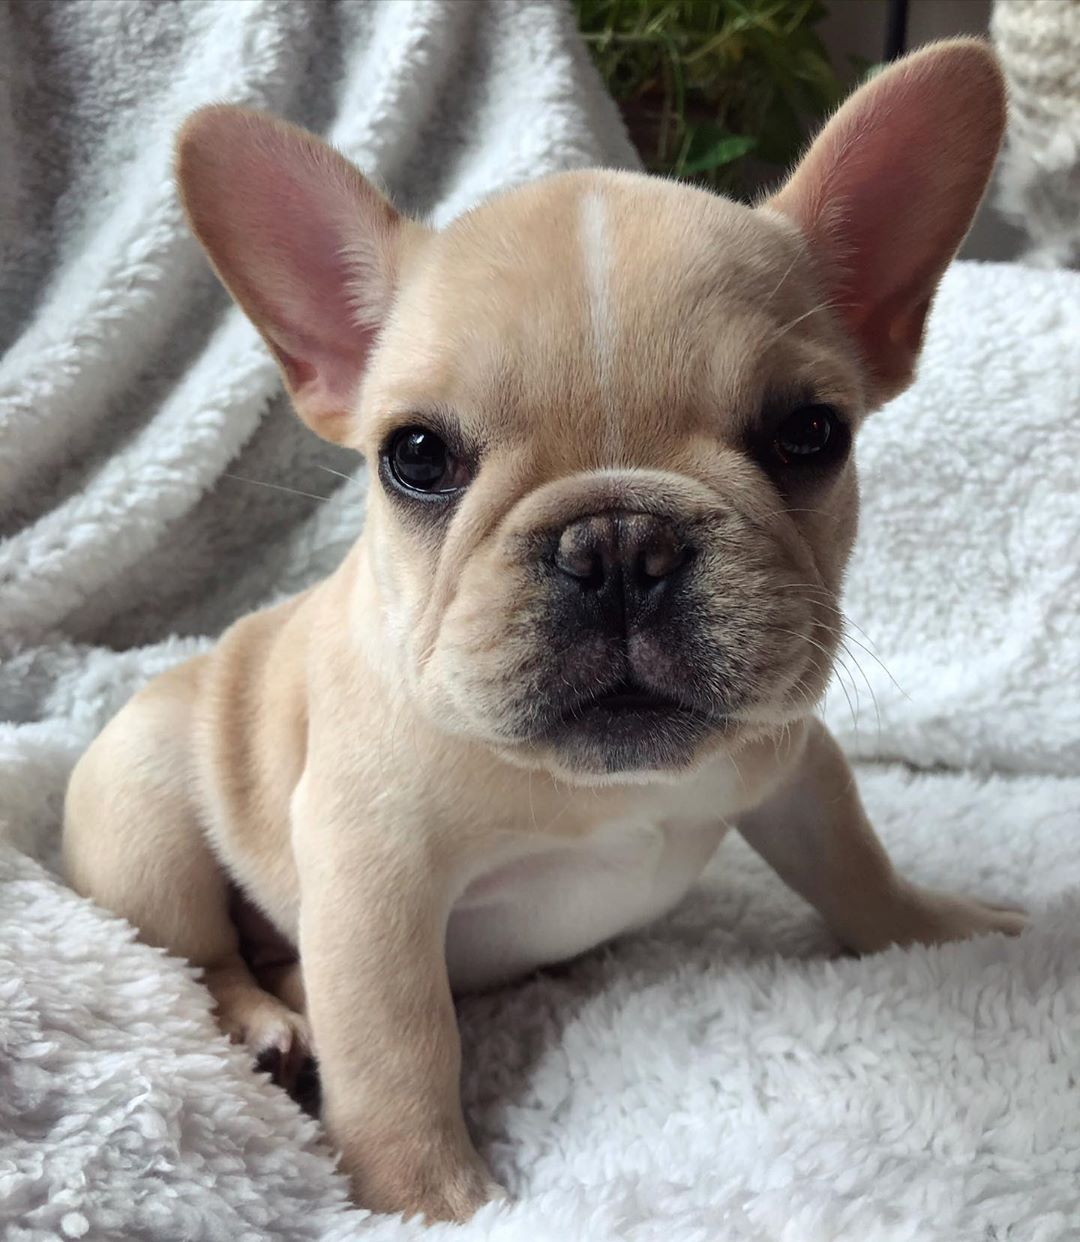 Why Are You So Cute They Say Marbella Marbellathefrenchie